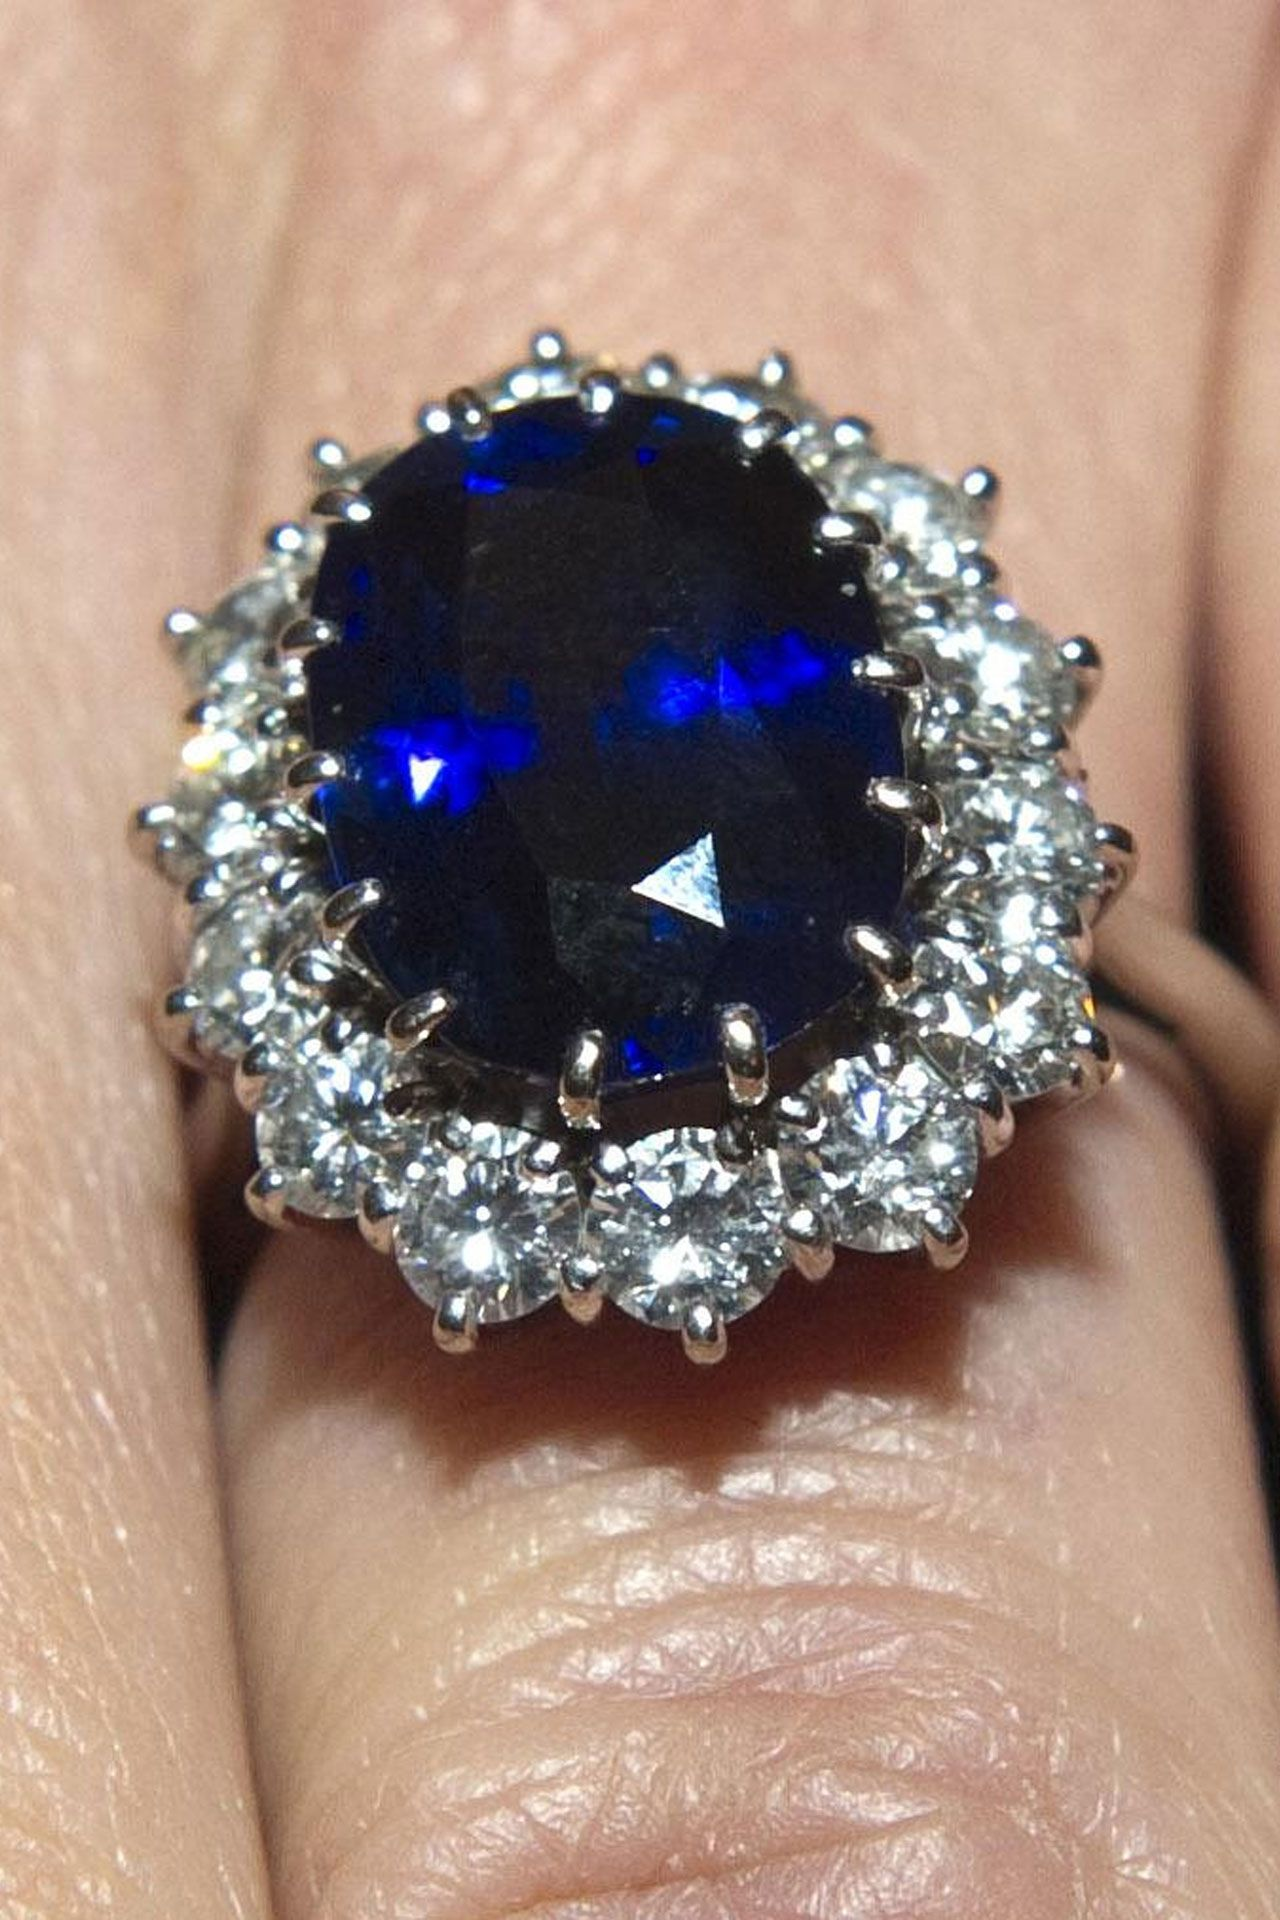 subsampling articles anything spellbound false jewellery sapphire blue the editor but brands traditional scale engagement are that royal crop upscale rings asscher